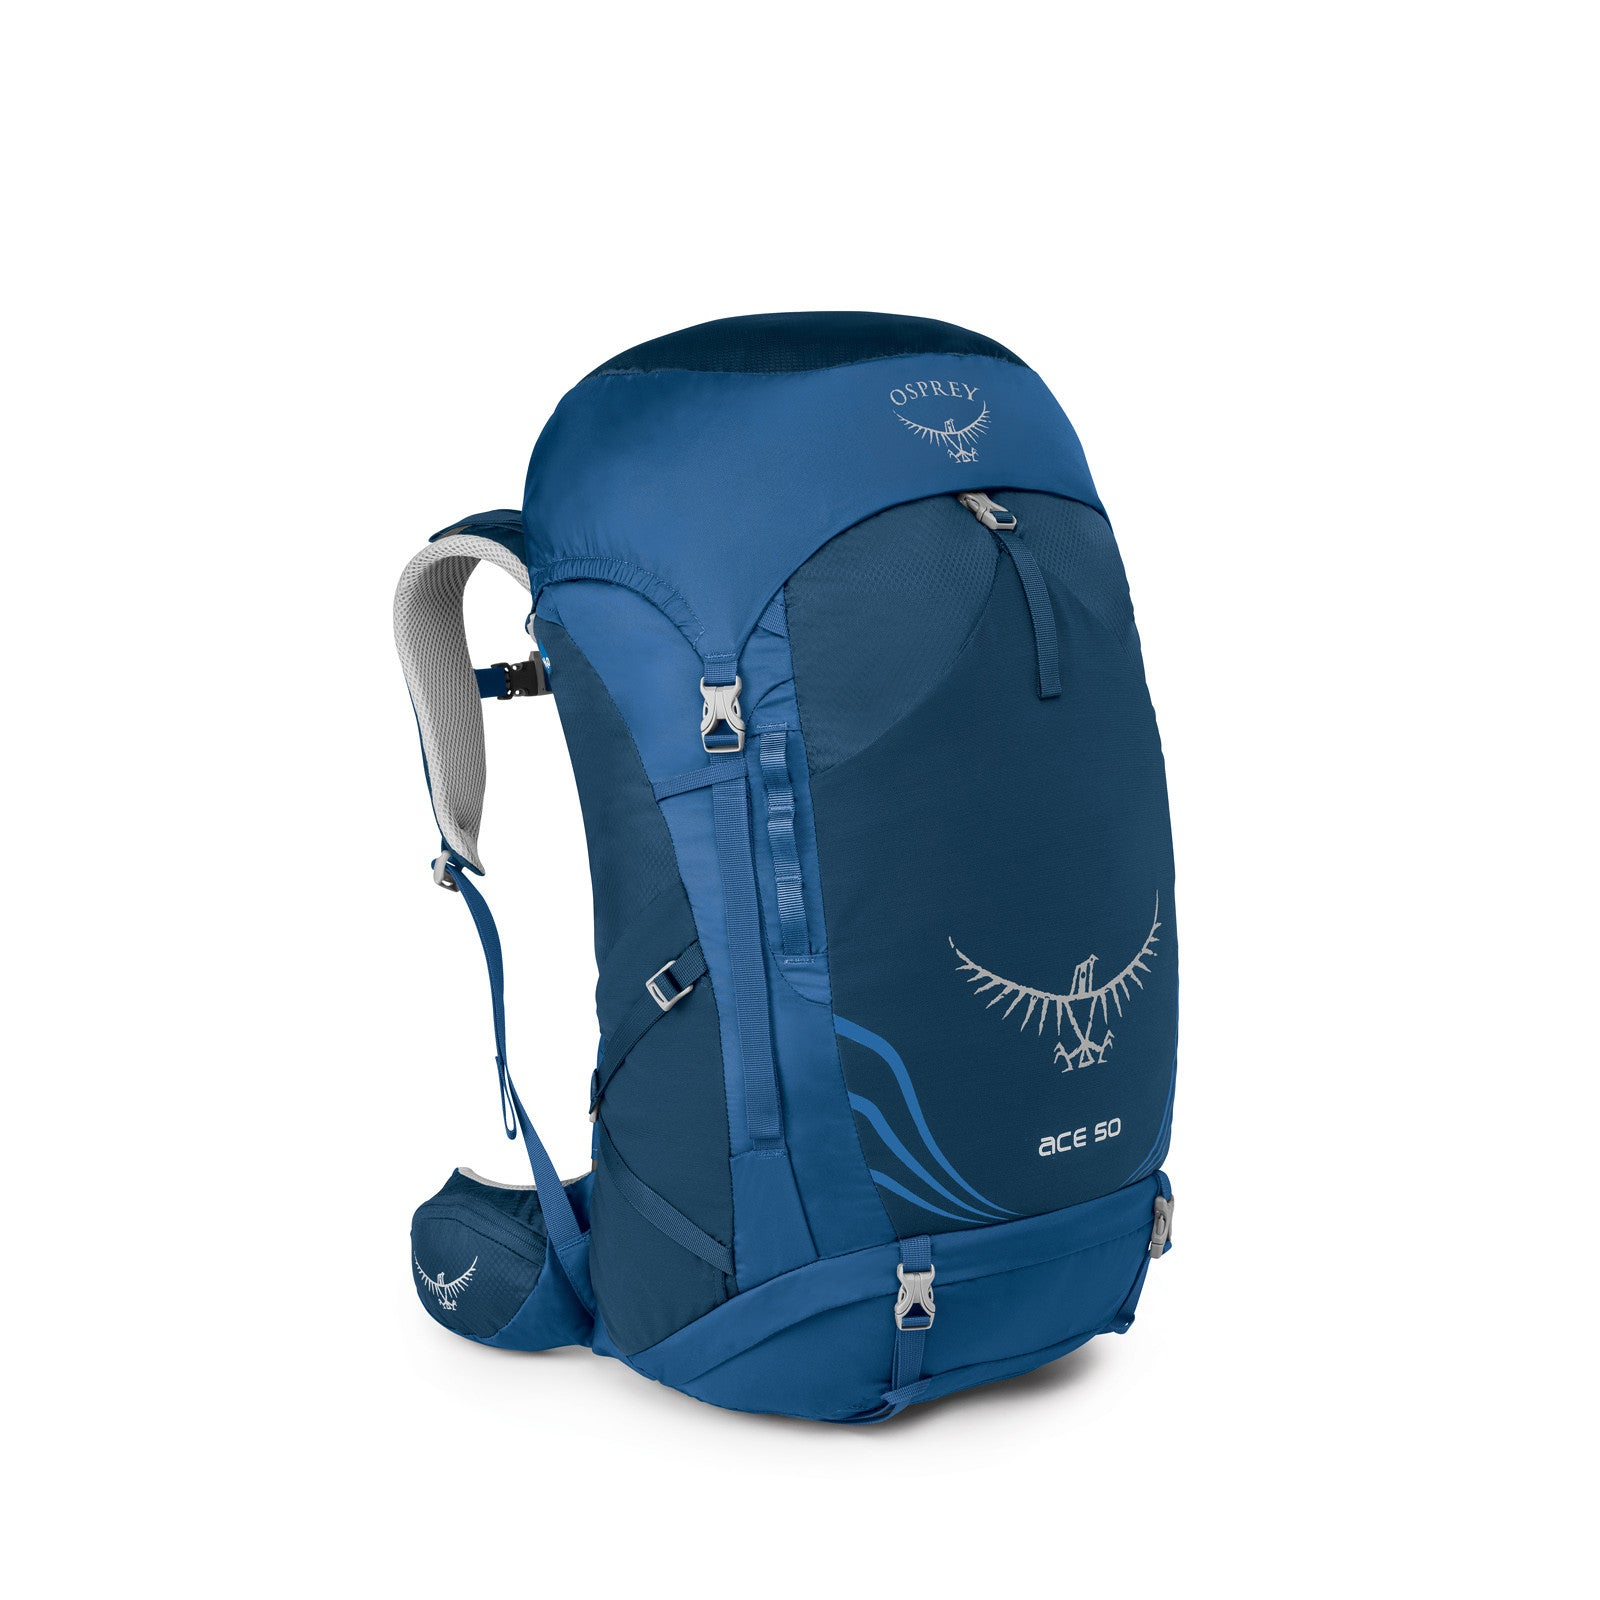 Osprey Ace 50 Children's Travel Pack